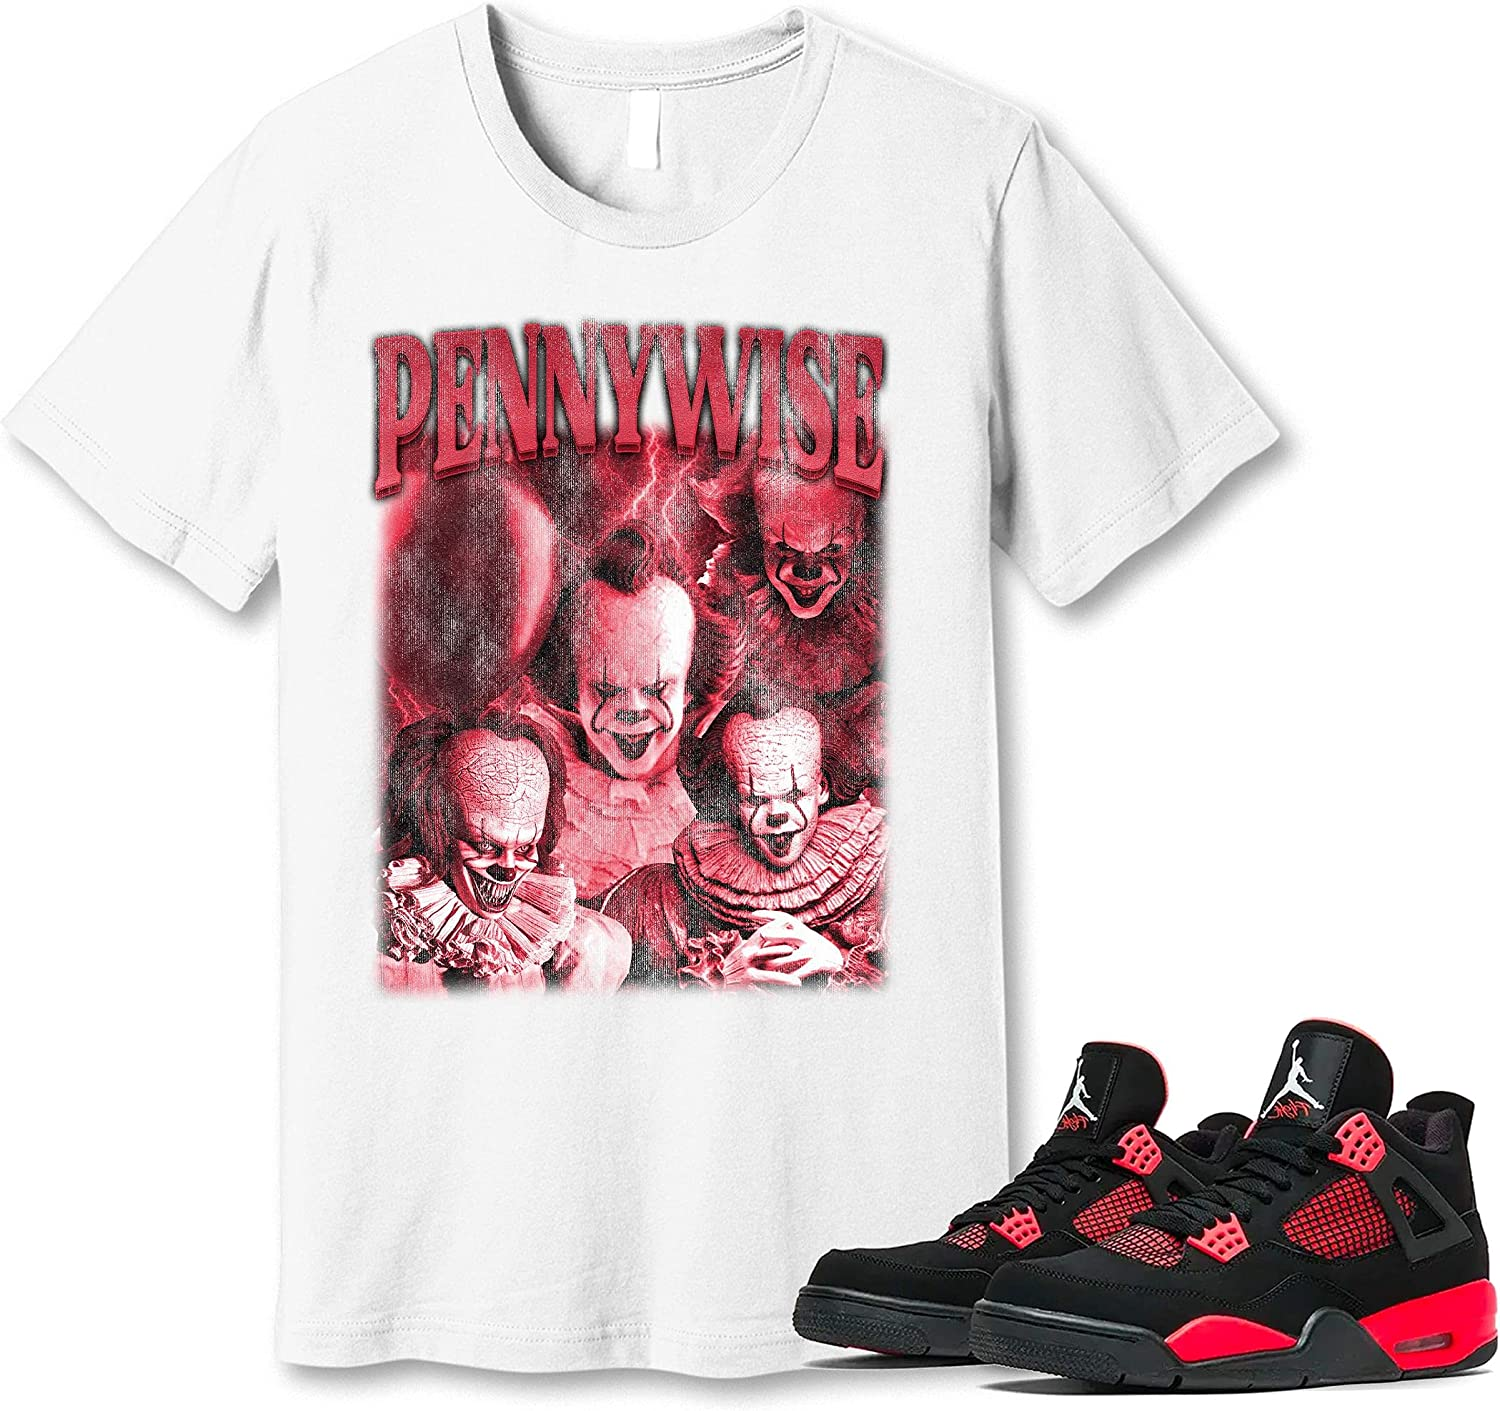 #Pennywise T-Shirt Very popular to Match Jordan 4 Snkrs Sneaker G Thunder Red 2021 autumn and winter new